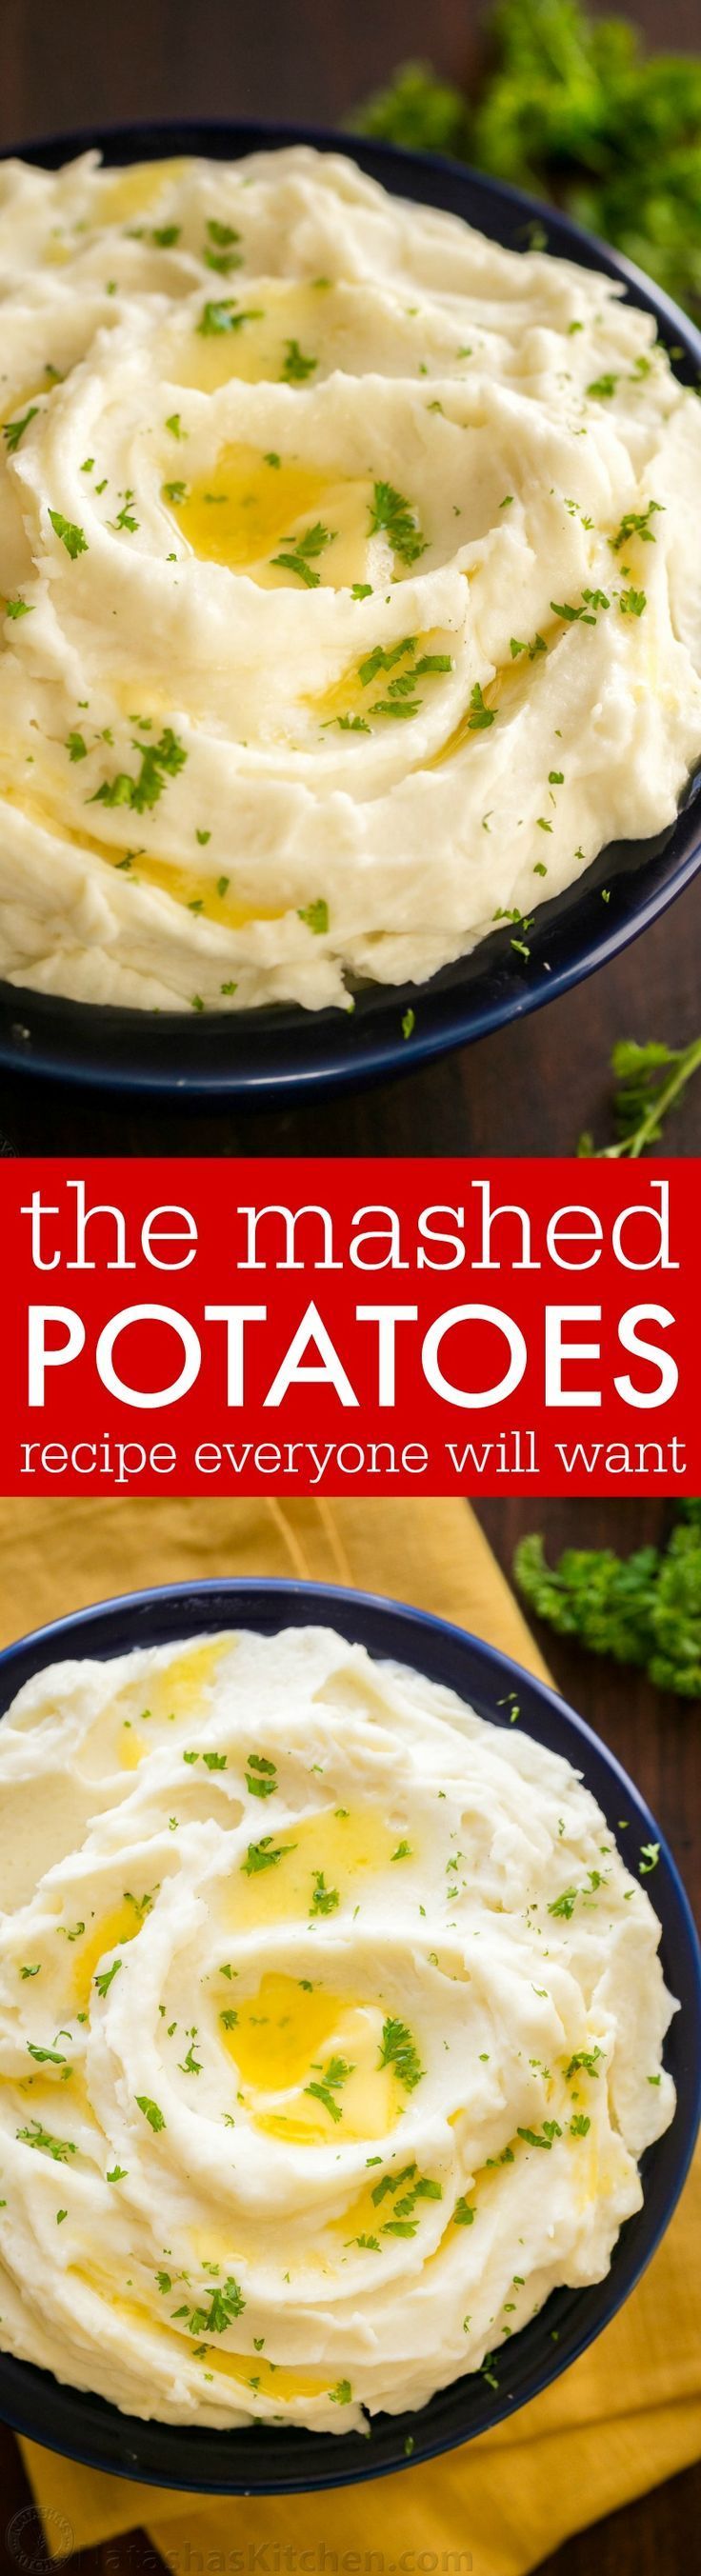 Exotic mashed potato recipes